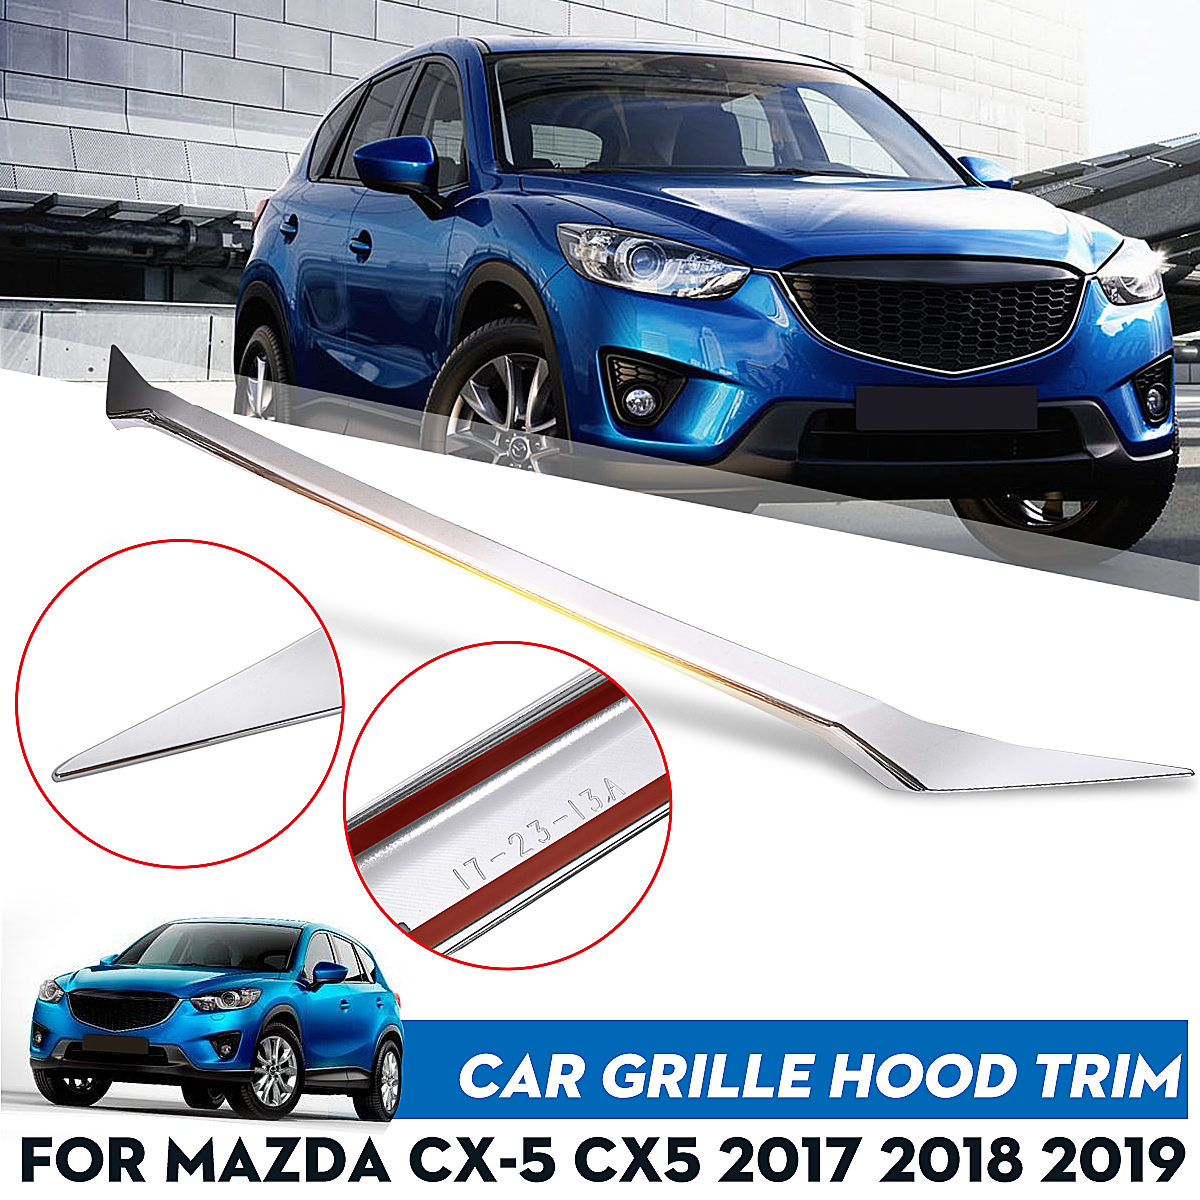 ABS Chrome Car Front Grille Grill Hood Engine Bonnet Cover Trim Sticker Decoration Accessories For Mazda CX-5 CX5 2017 2018 2019